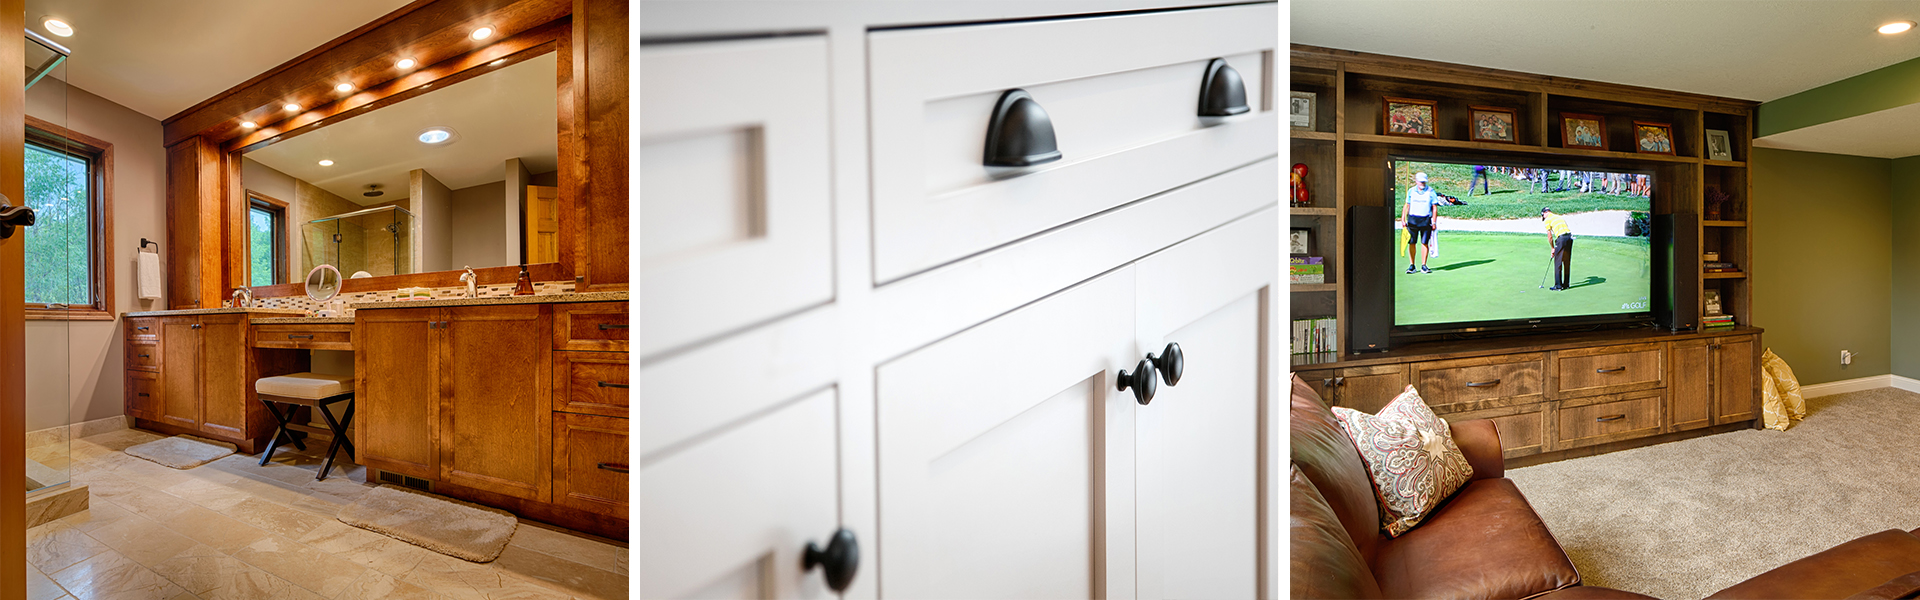 Custom Cabinets and Drawers